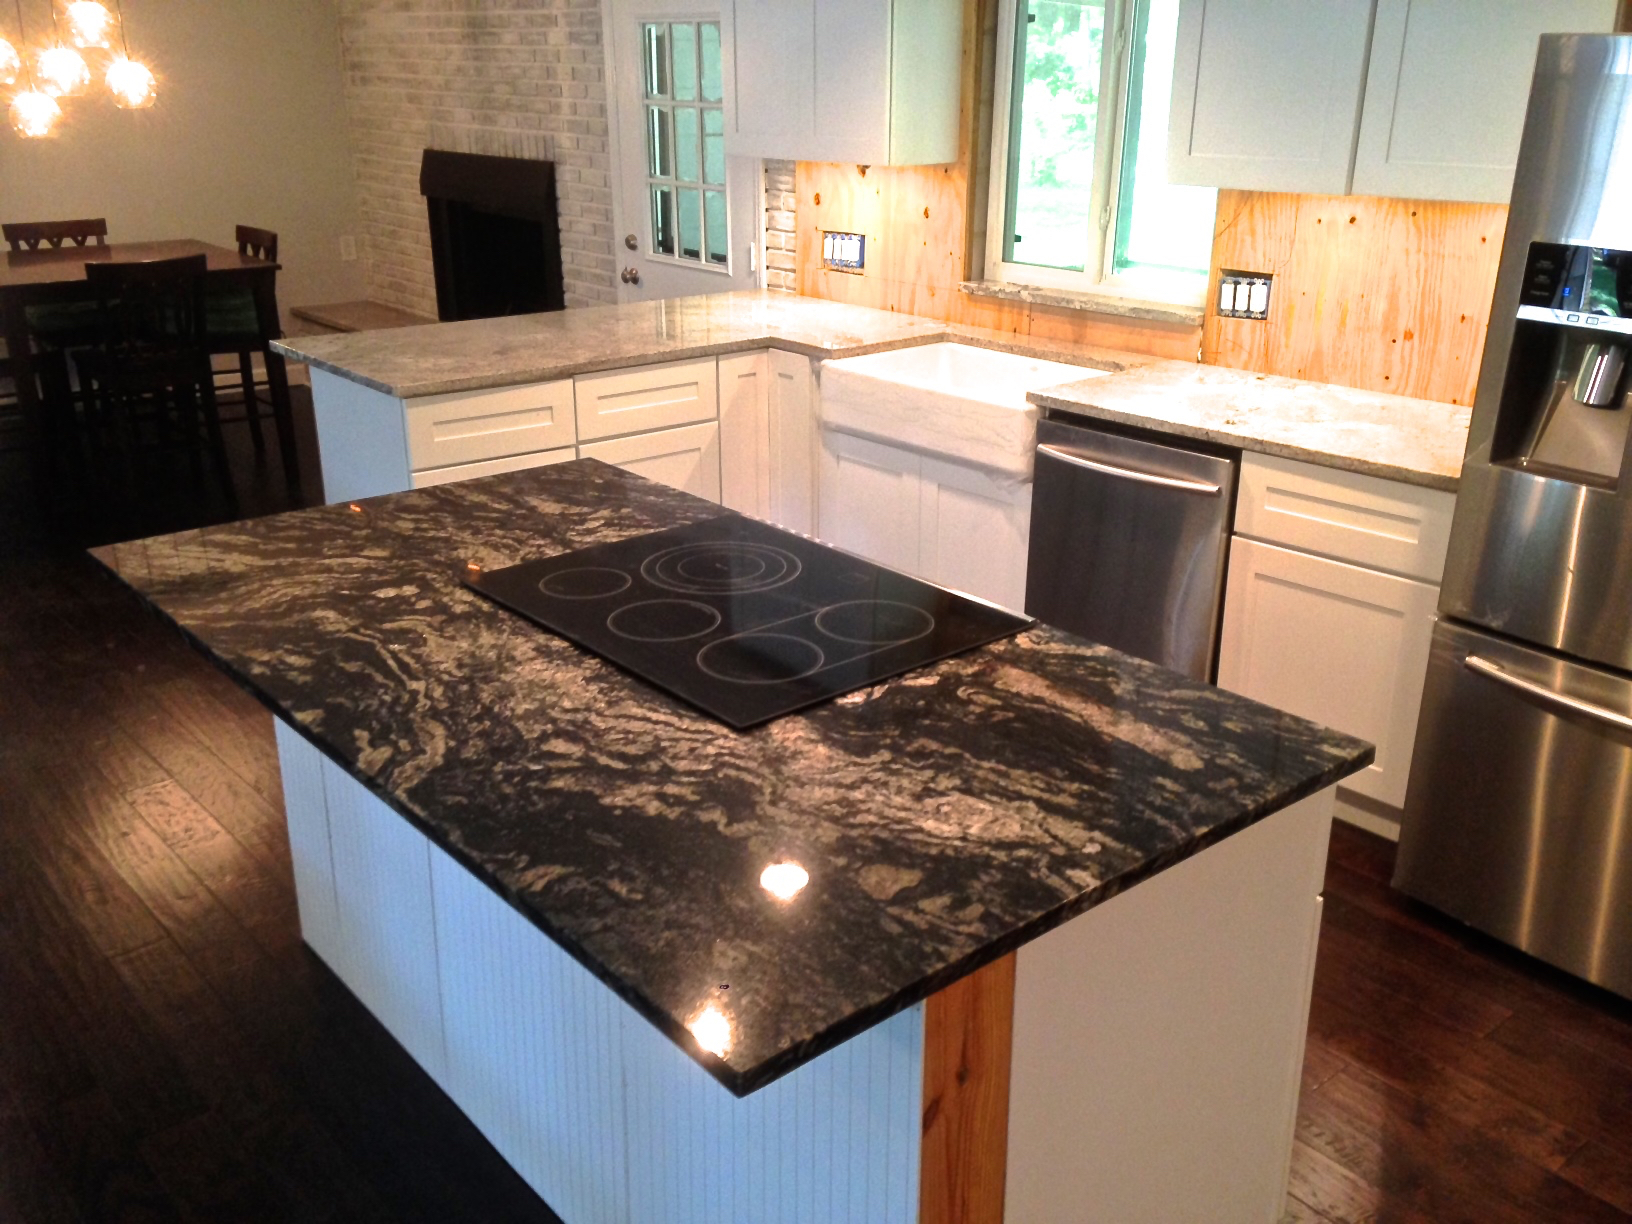 Black Granite Kitchen Countertops : ... farmhouse sink, and Indian Black granite countertop for the island